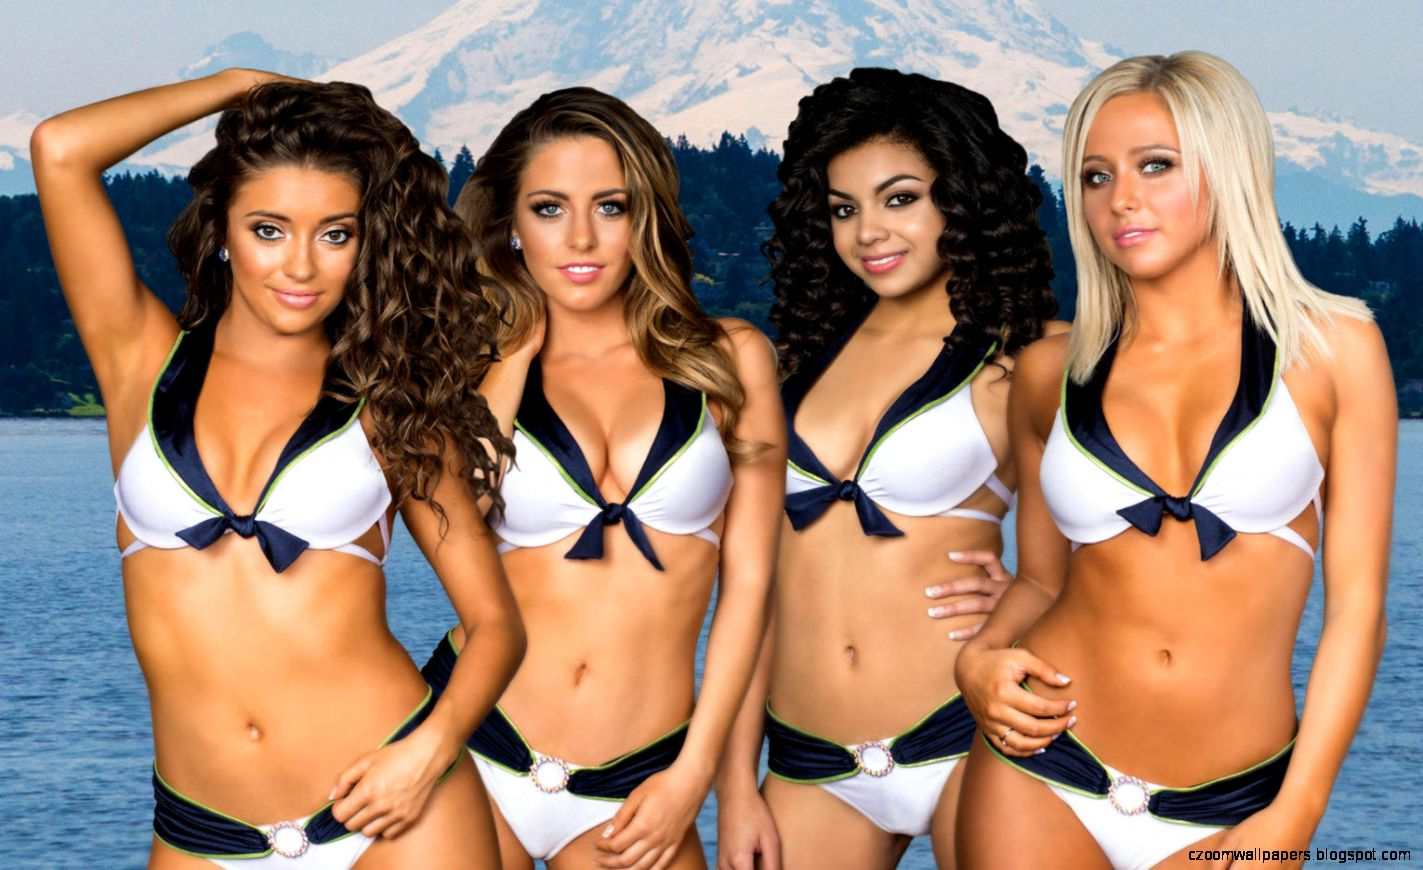 The Sea Gals  Seattle Seahawks